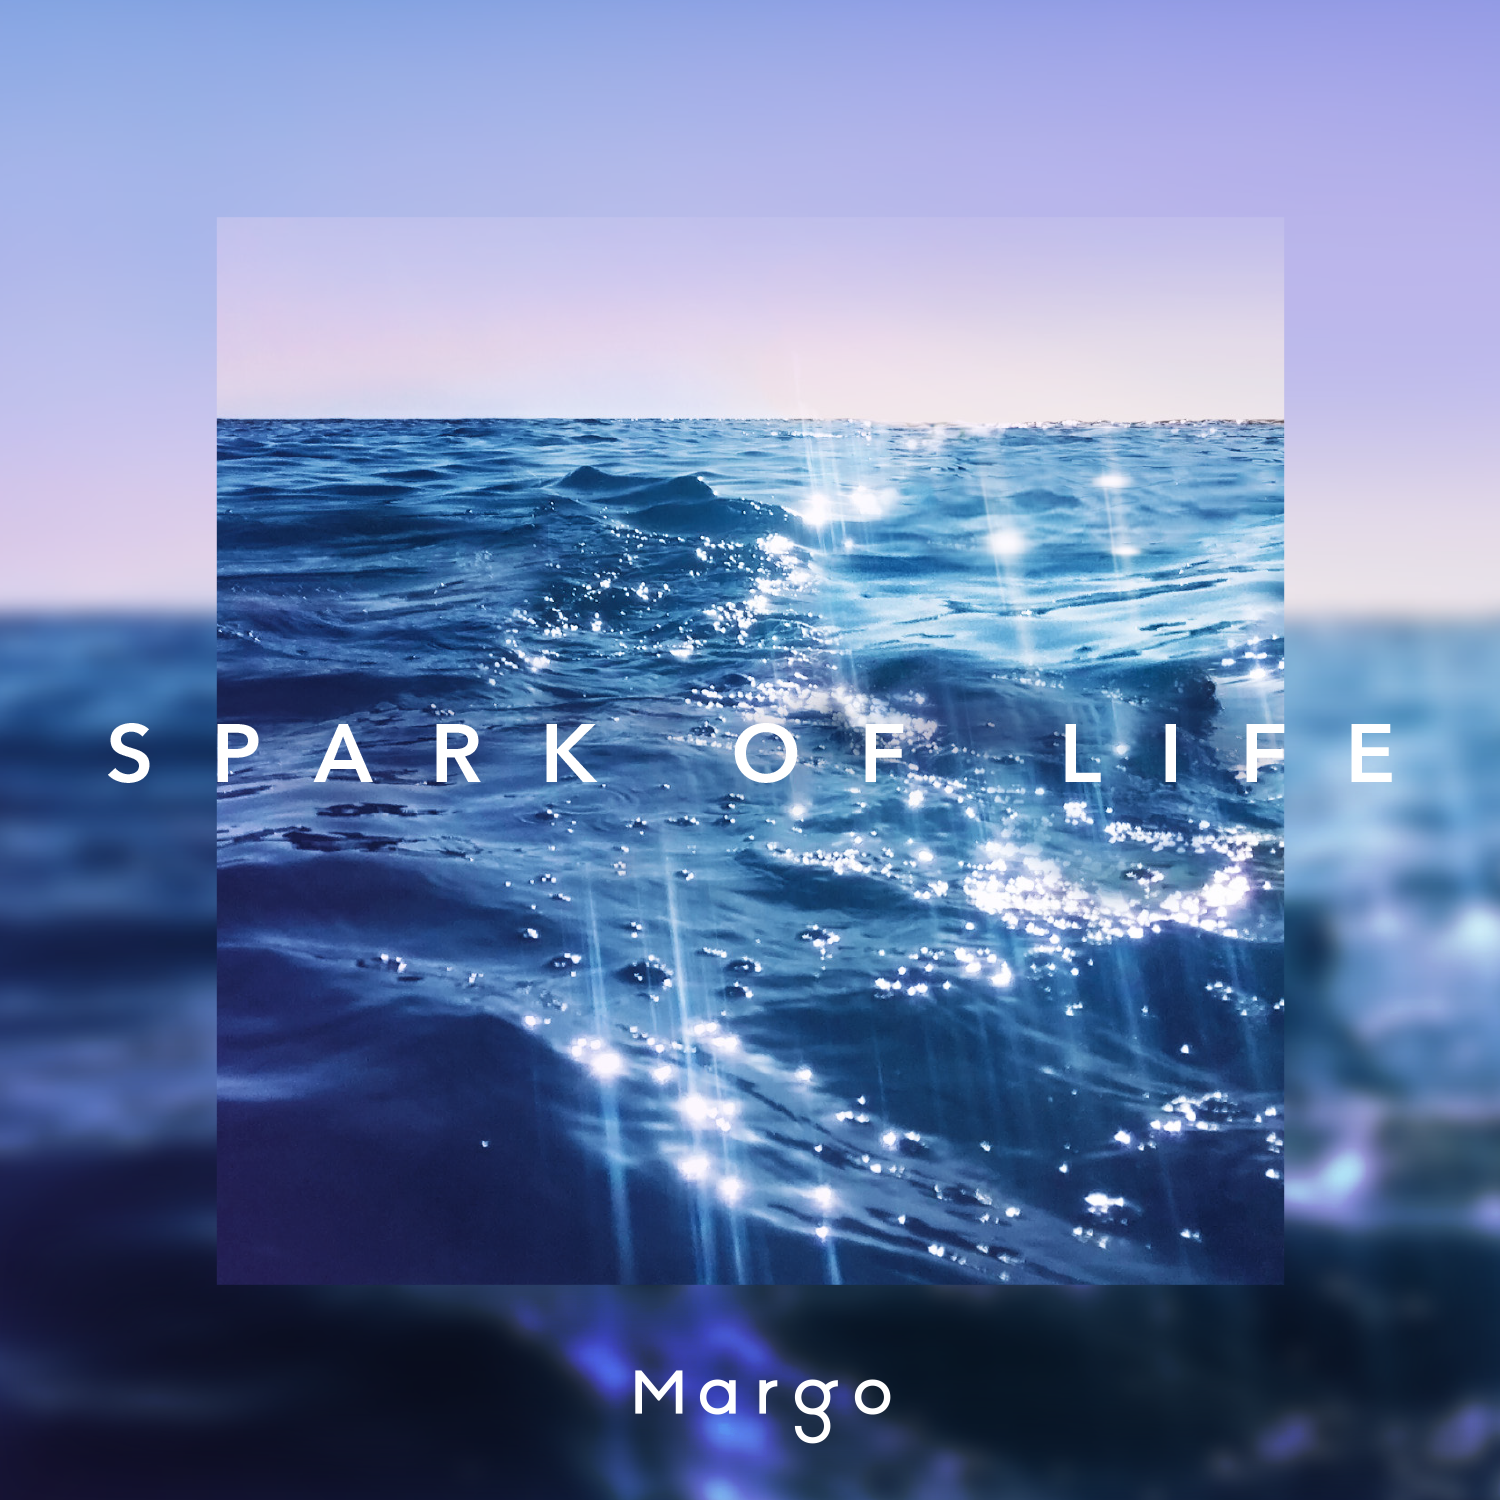 spark_of_love_album_cover.png